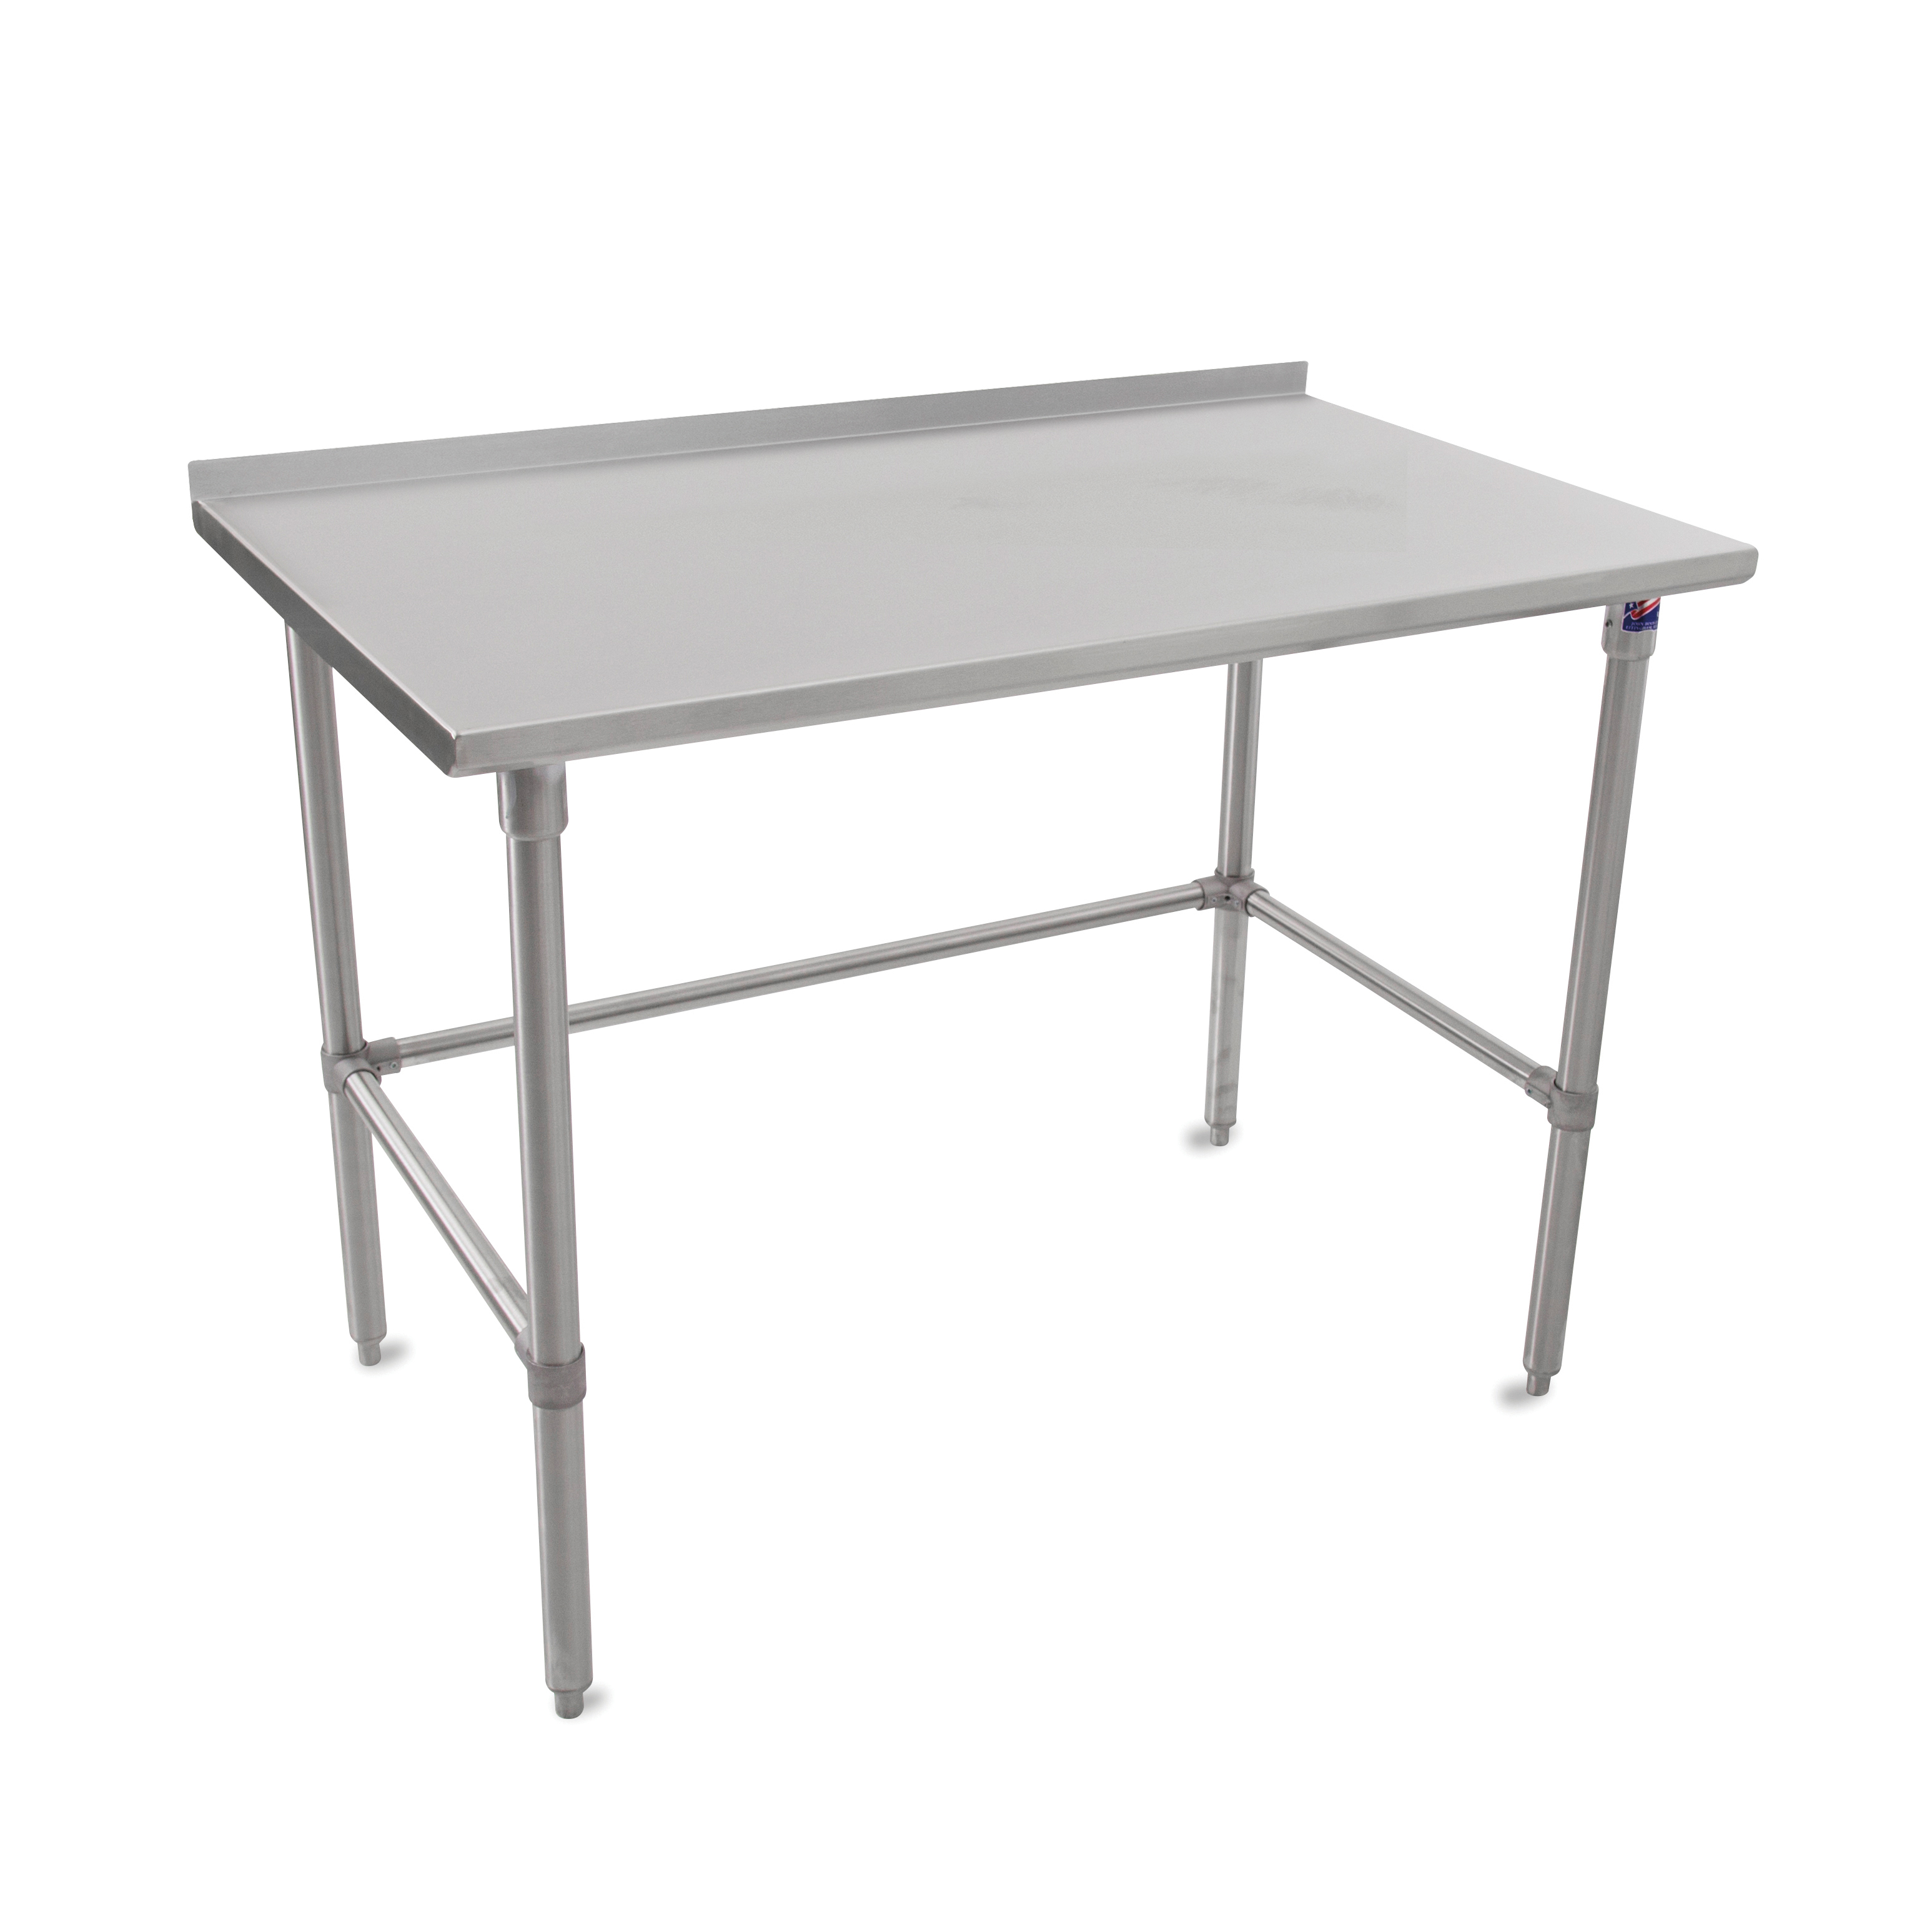 John Boos ST6R1.5-3030SBK work table,  30